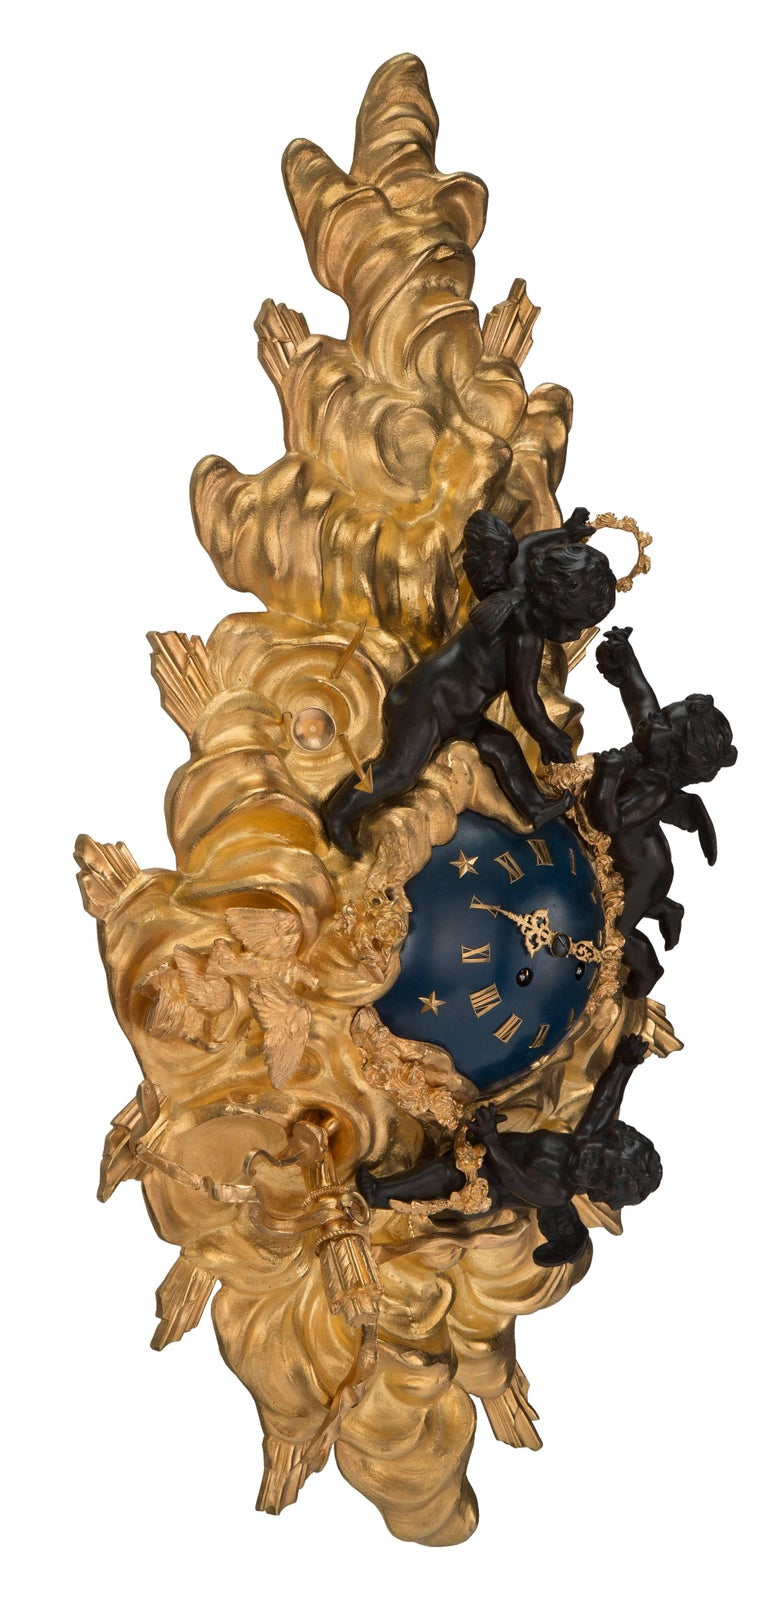 A beautiful French 19th century Louis XV st. ormolu, patinated bronze and blue enamel cartel clock. The clock displays a most elegant and decorative cloud like ormolu design. Decorated with richly chased love birds, arrows, quivers, musical